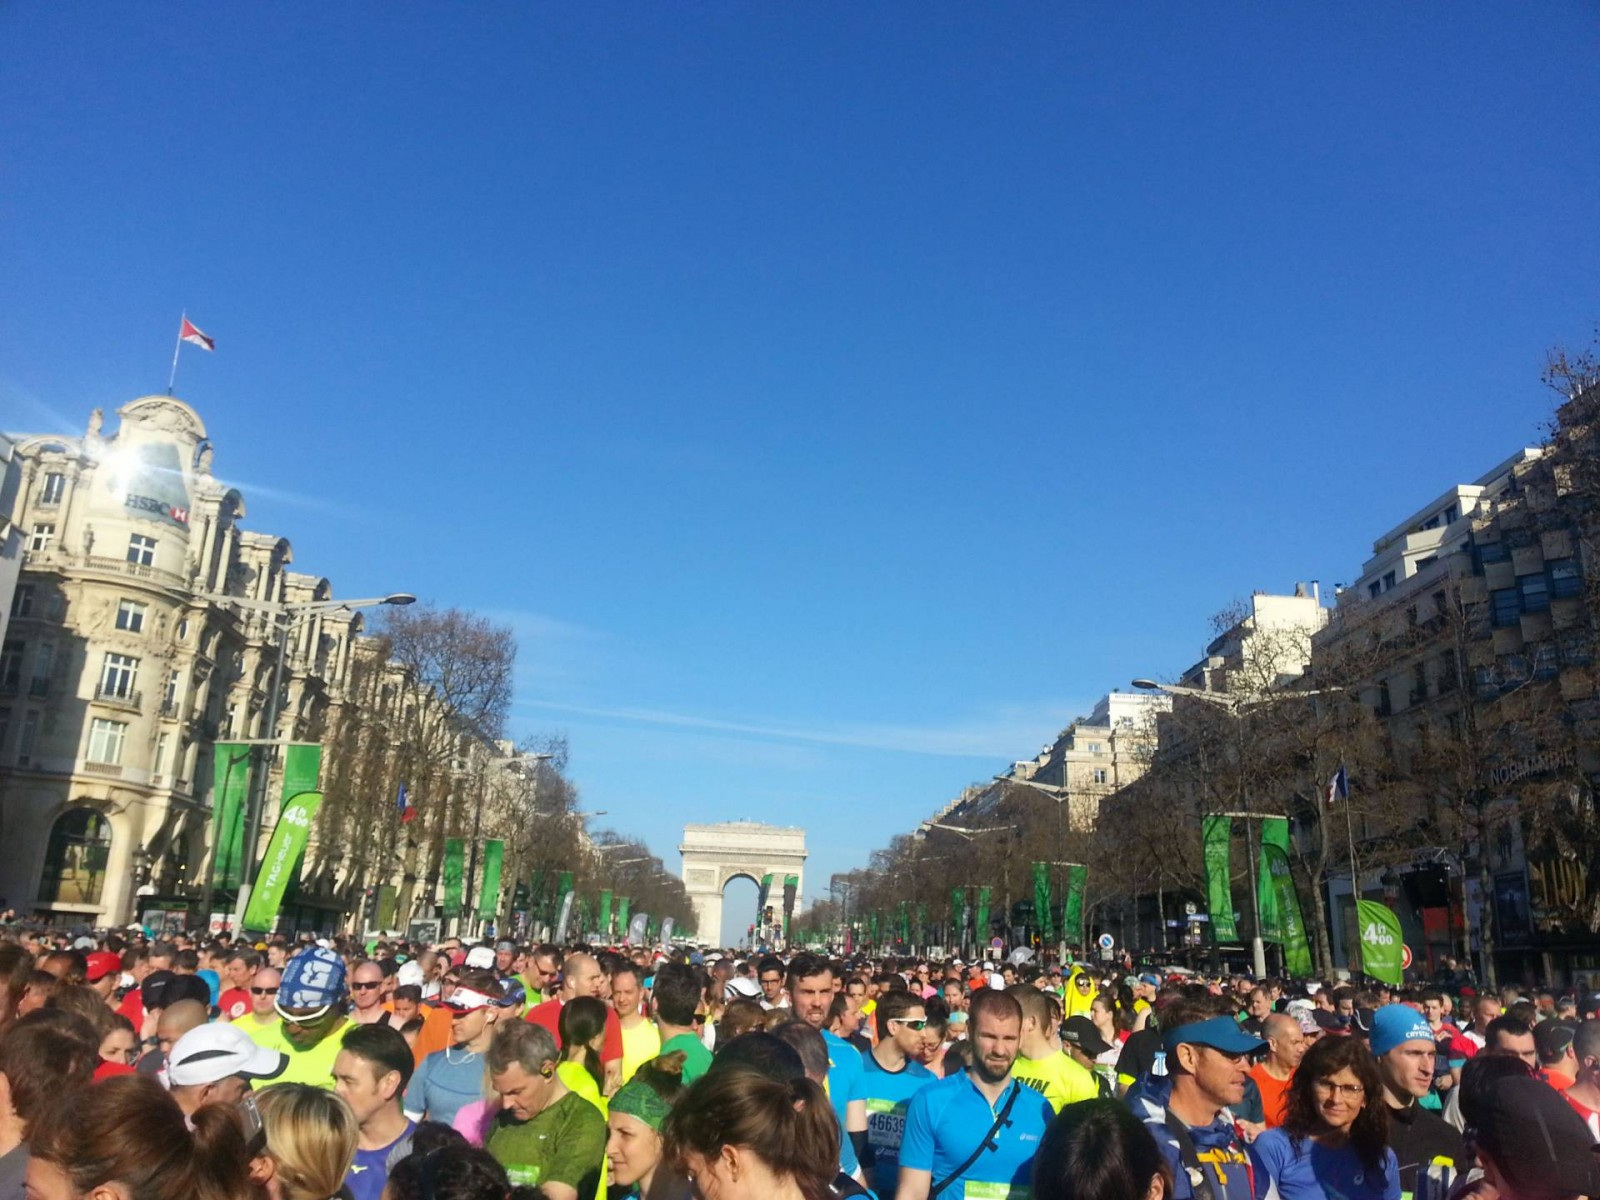 Paris Marathon 2016 start line Champs Elysees